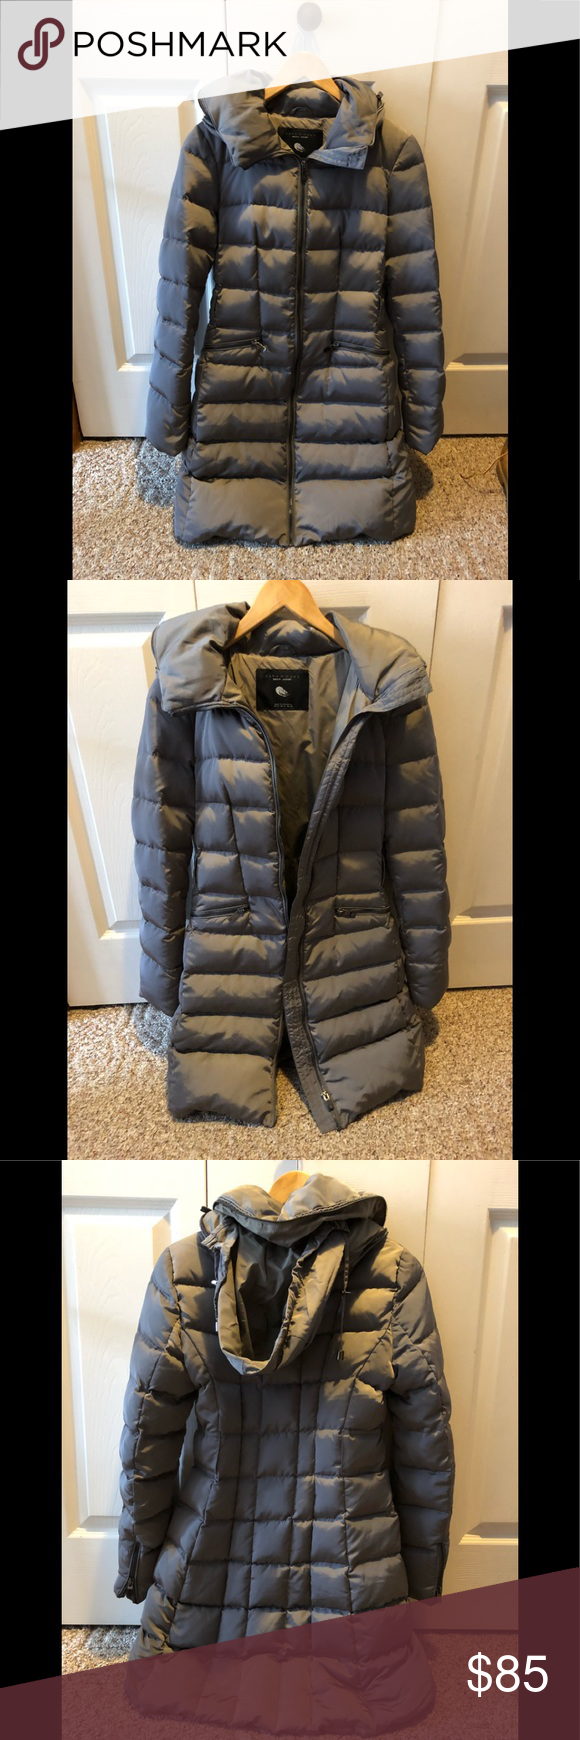 37134a63d1 Zara Woman Down Jacket Great condition Zara Woman Down puffer Jacket. Color  gray. No rips